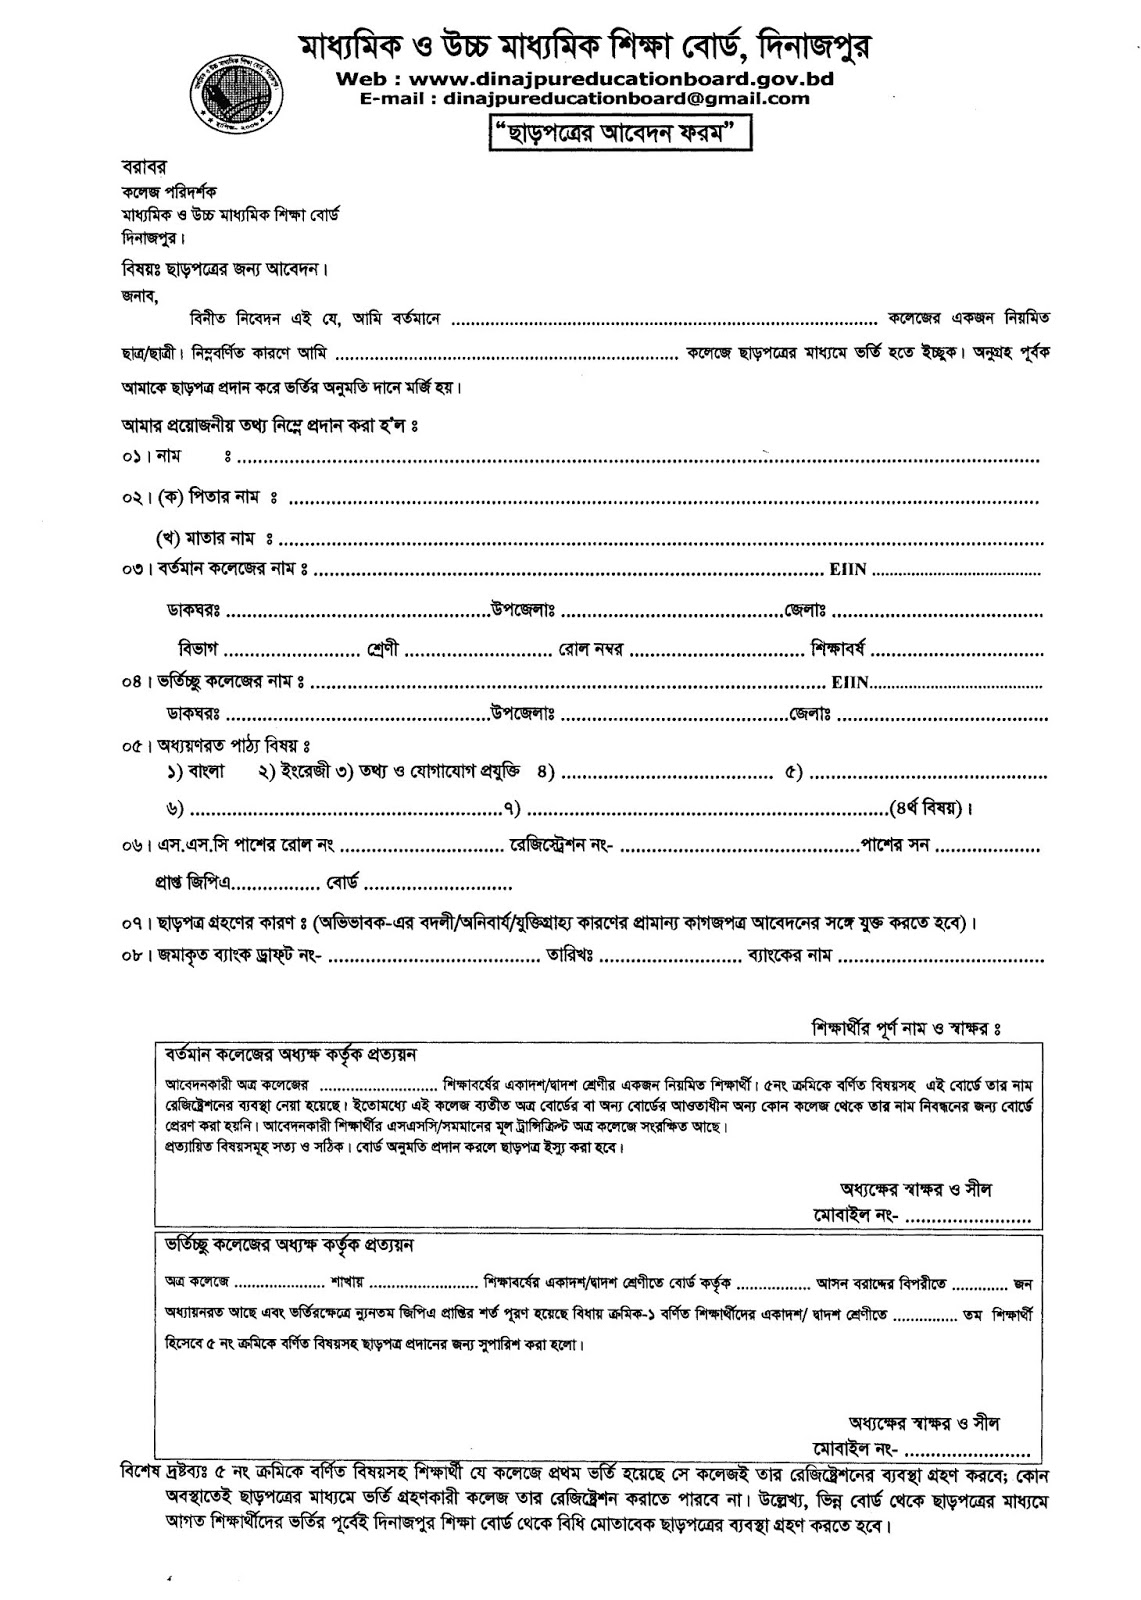 Dinajpur Board College Transfer Form  (TC FORM) | XI XII College Transfer From